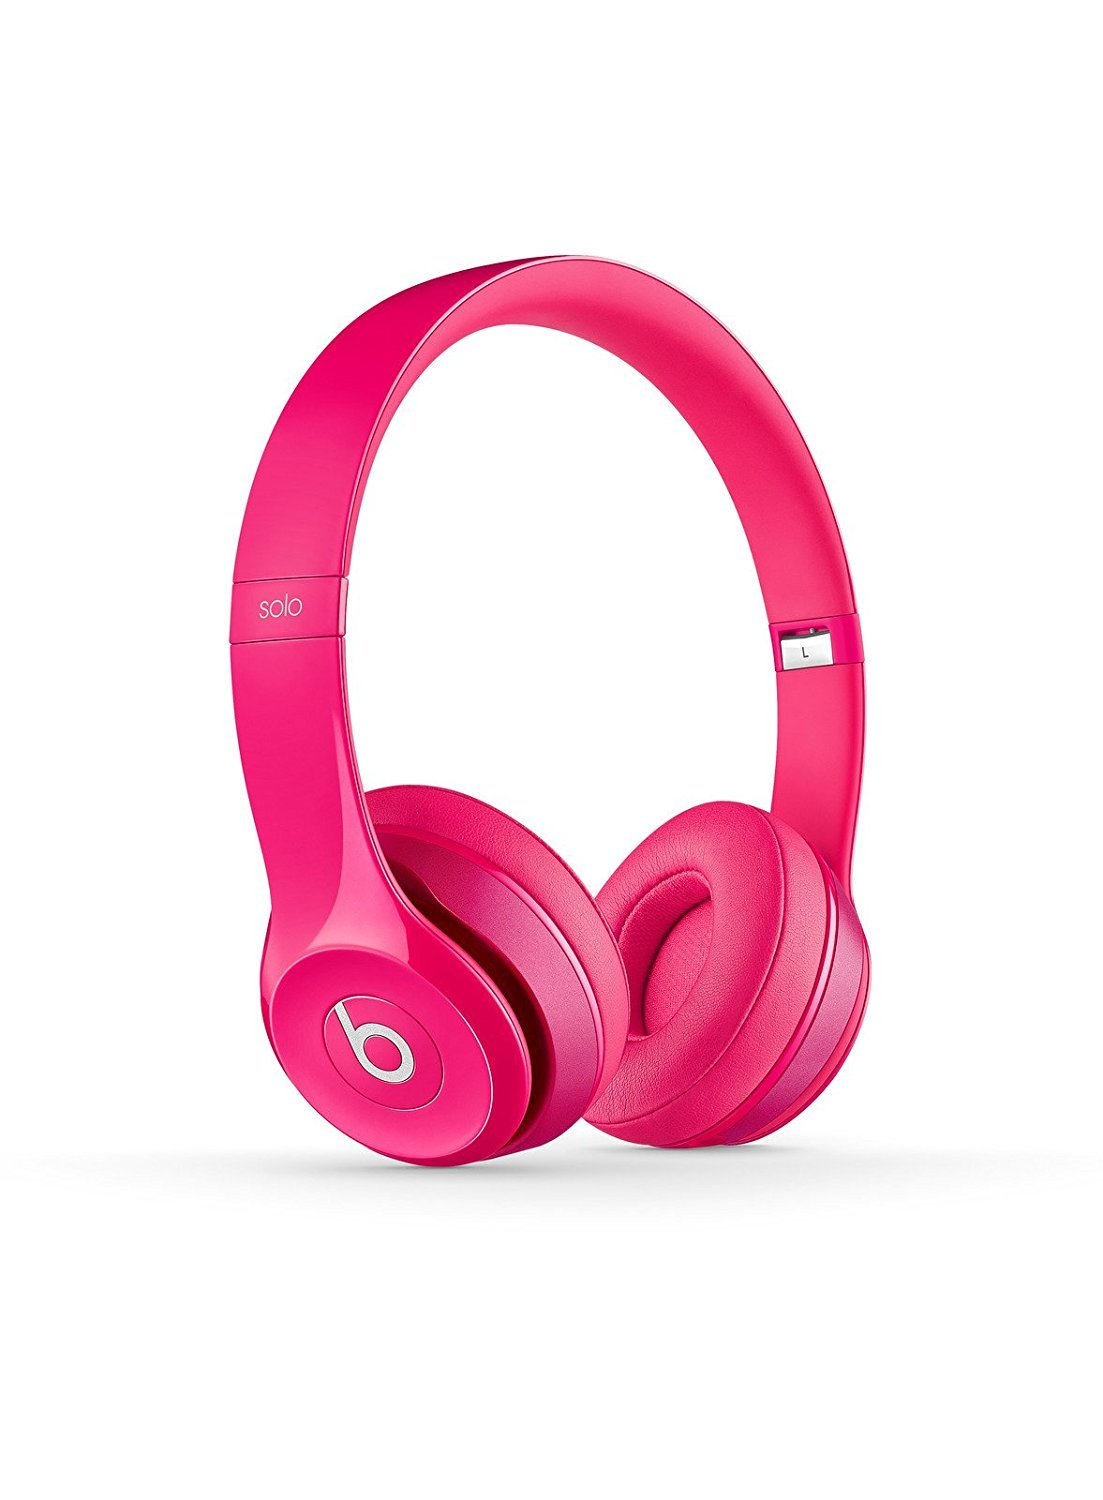 Beats Solo2 Solo 2 Dr Dre Wired On-Ear Headphone for iPhone / Android / Windows - Pink - New in Retail Package. by Beats